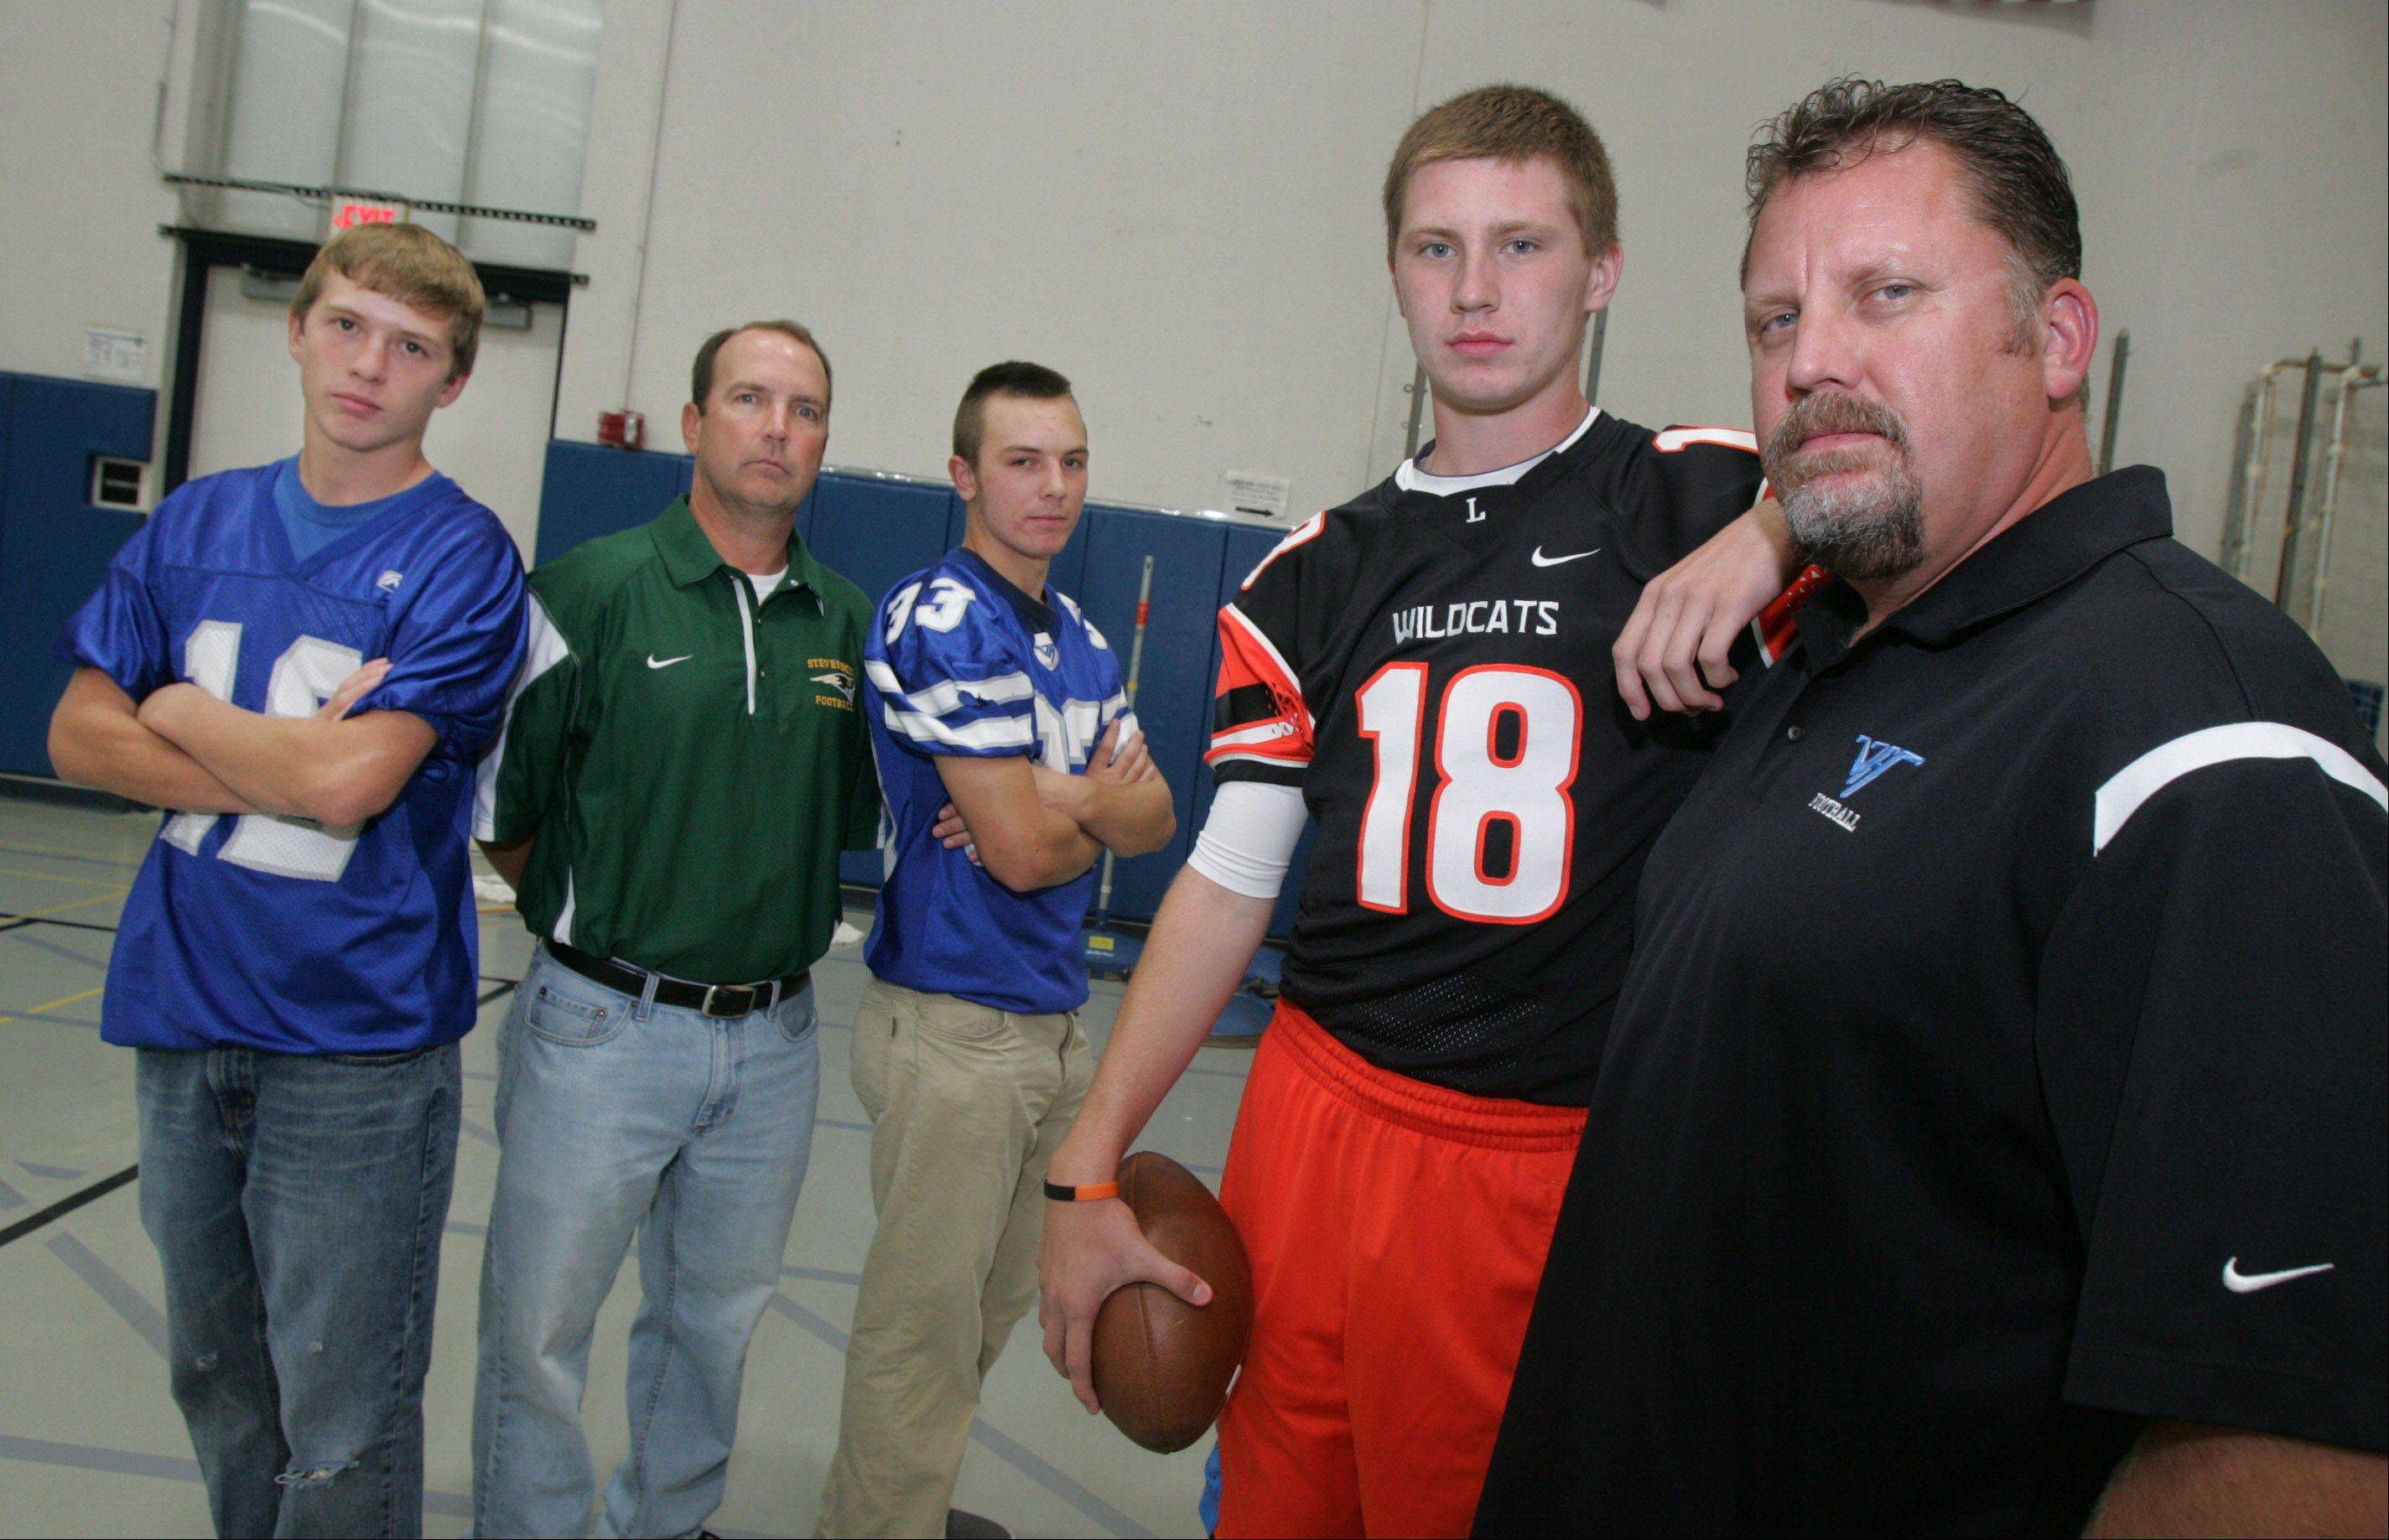 Vernon Hills football coach Tony Monken, right, with his son, Anthony, who plays for Libertyville; and Stevenson football coach Bill McNamara, in green, with his two sons, Dylan (33) and Connor (12), who play for Vernon Hills.